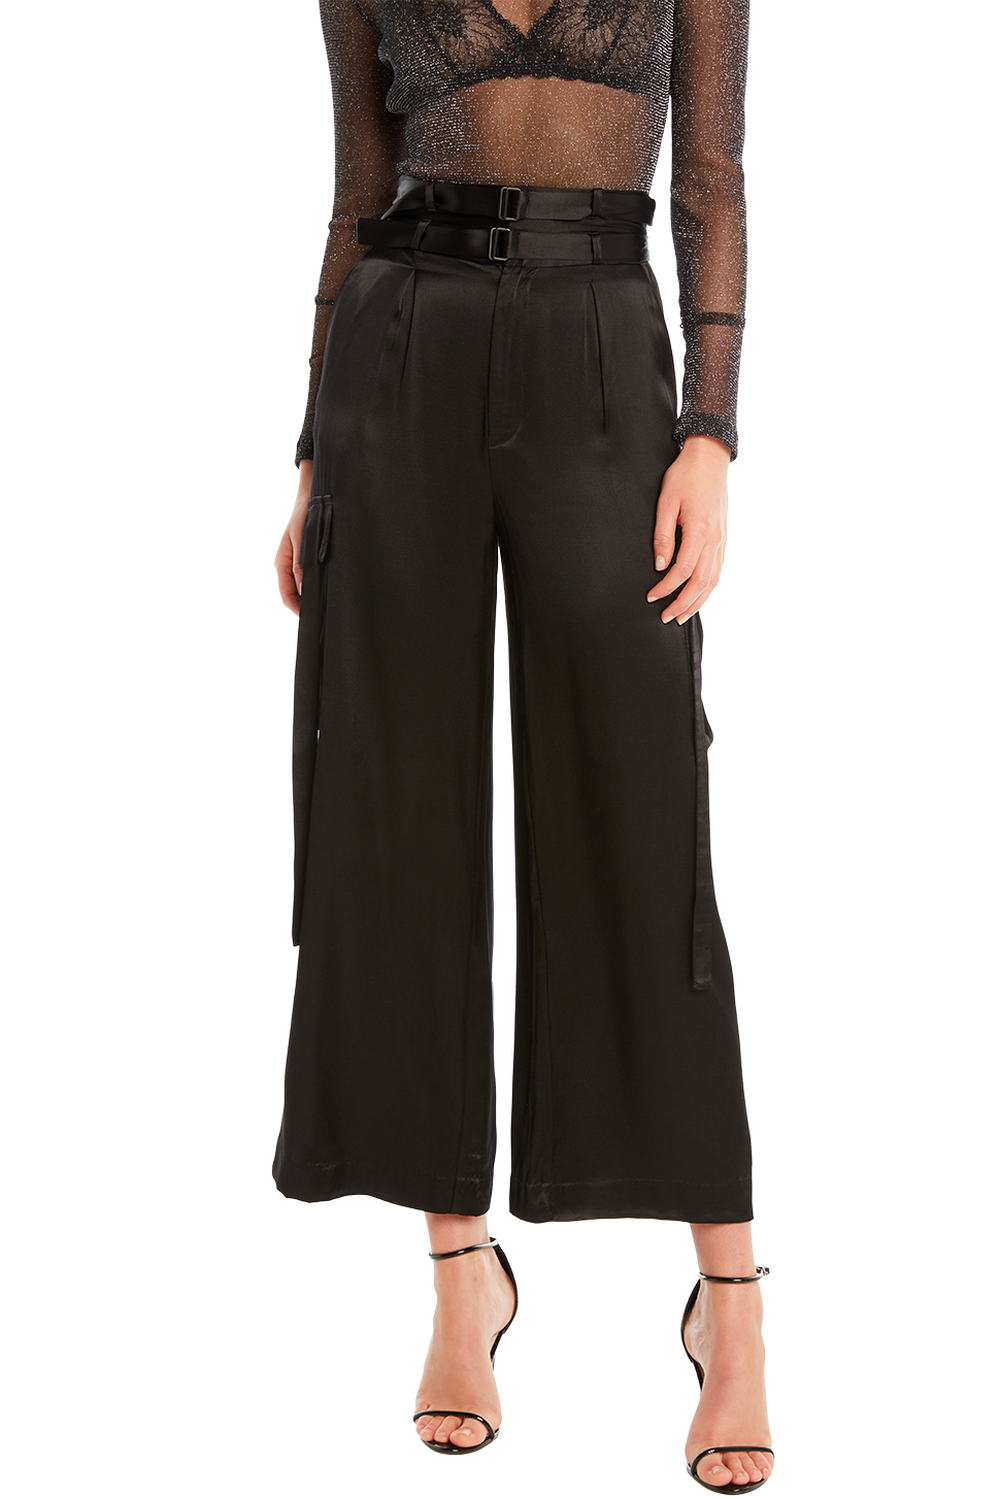 SATIN CARGO PANT in colour CAVIAR